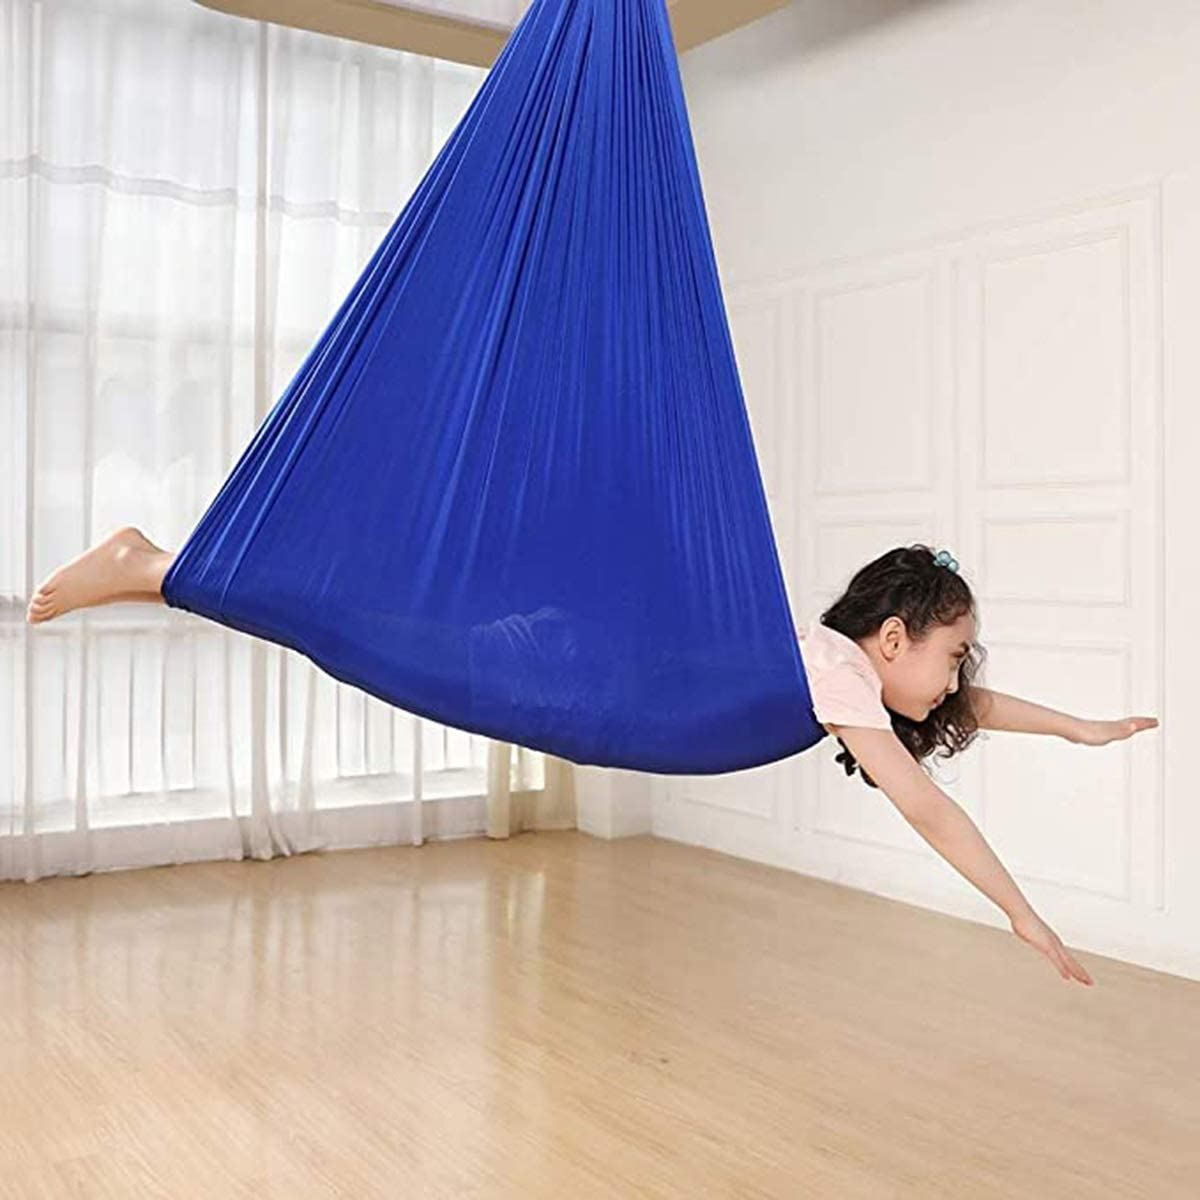 MTFZD Indoor Therapy Swing Ideal S Hammock Elastic Dealing full Excellence price reduction Yoga Children